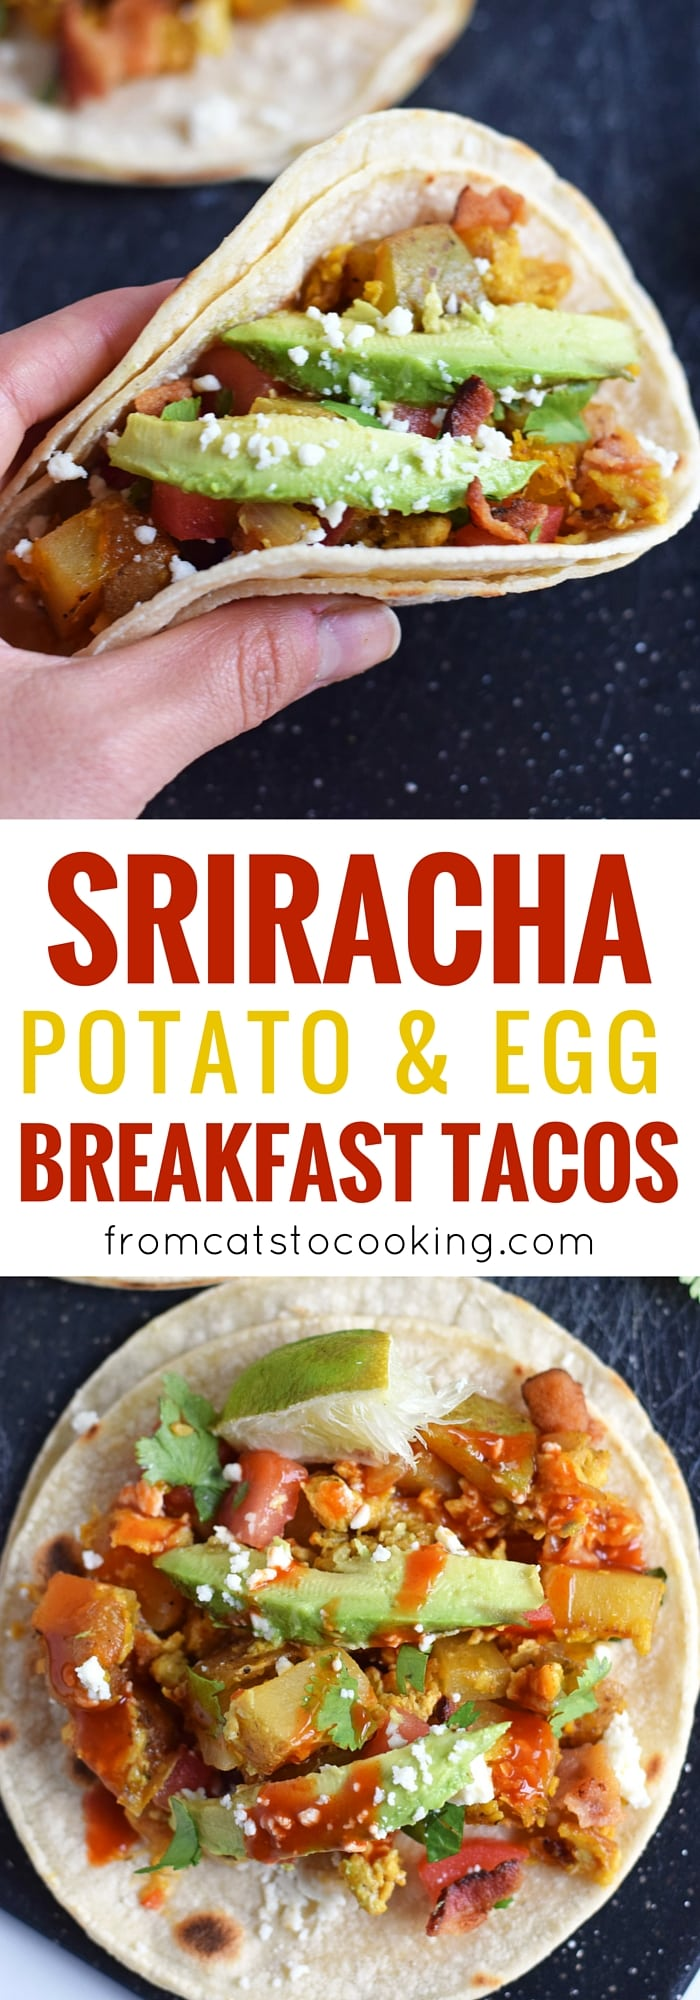 Sriracha Potato & Egg Breakfast Tacos